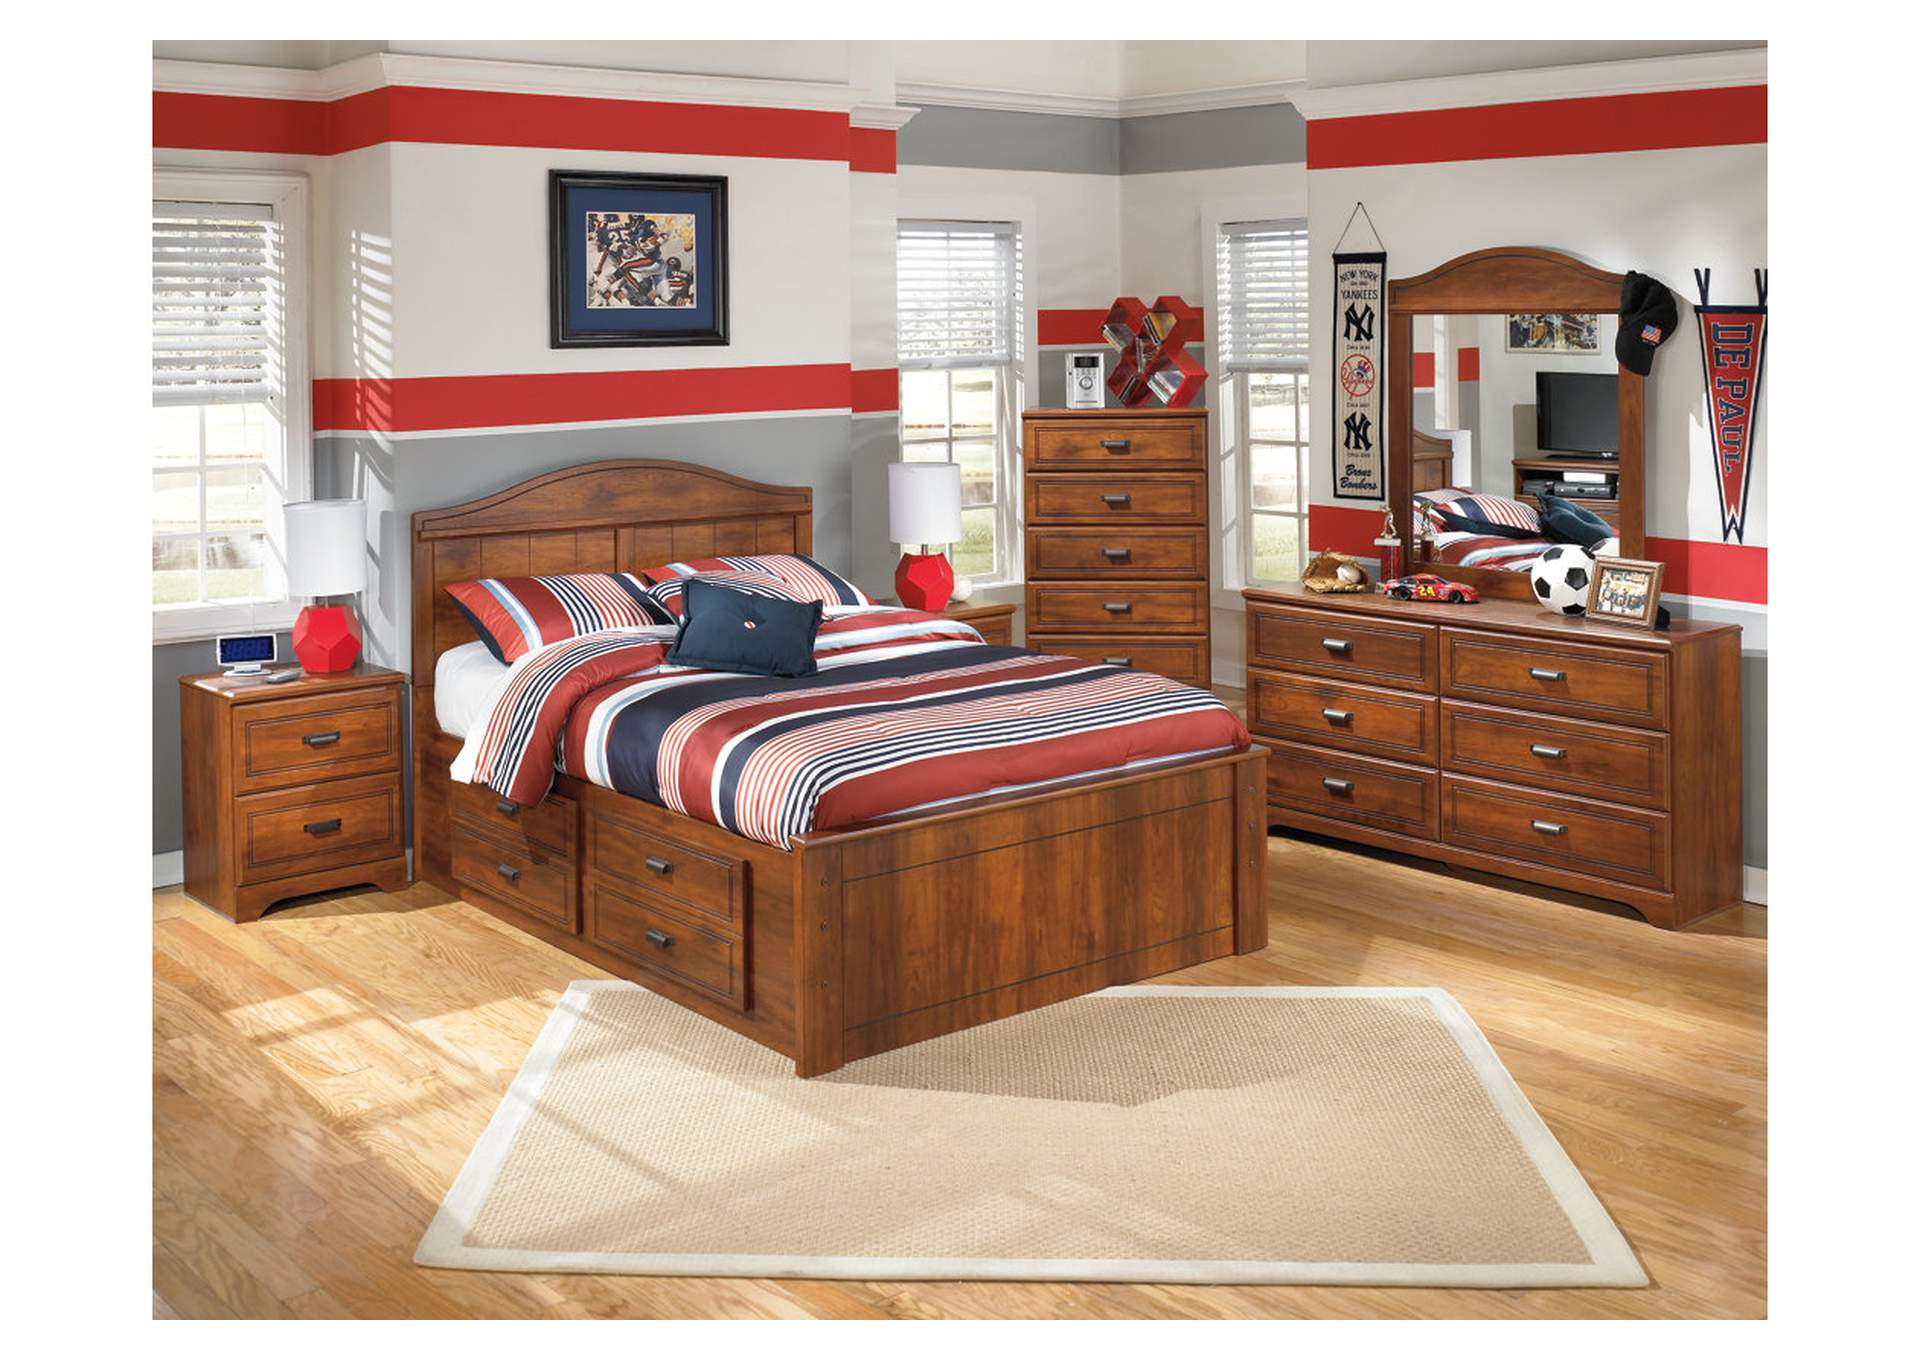 Barchan Full Panel Bed w/ Storage, Dresser & Mirror,Signature Design By Ashley